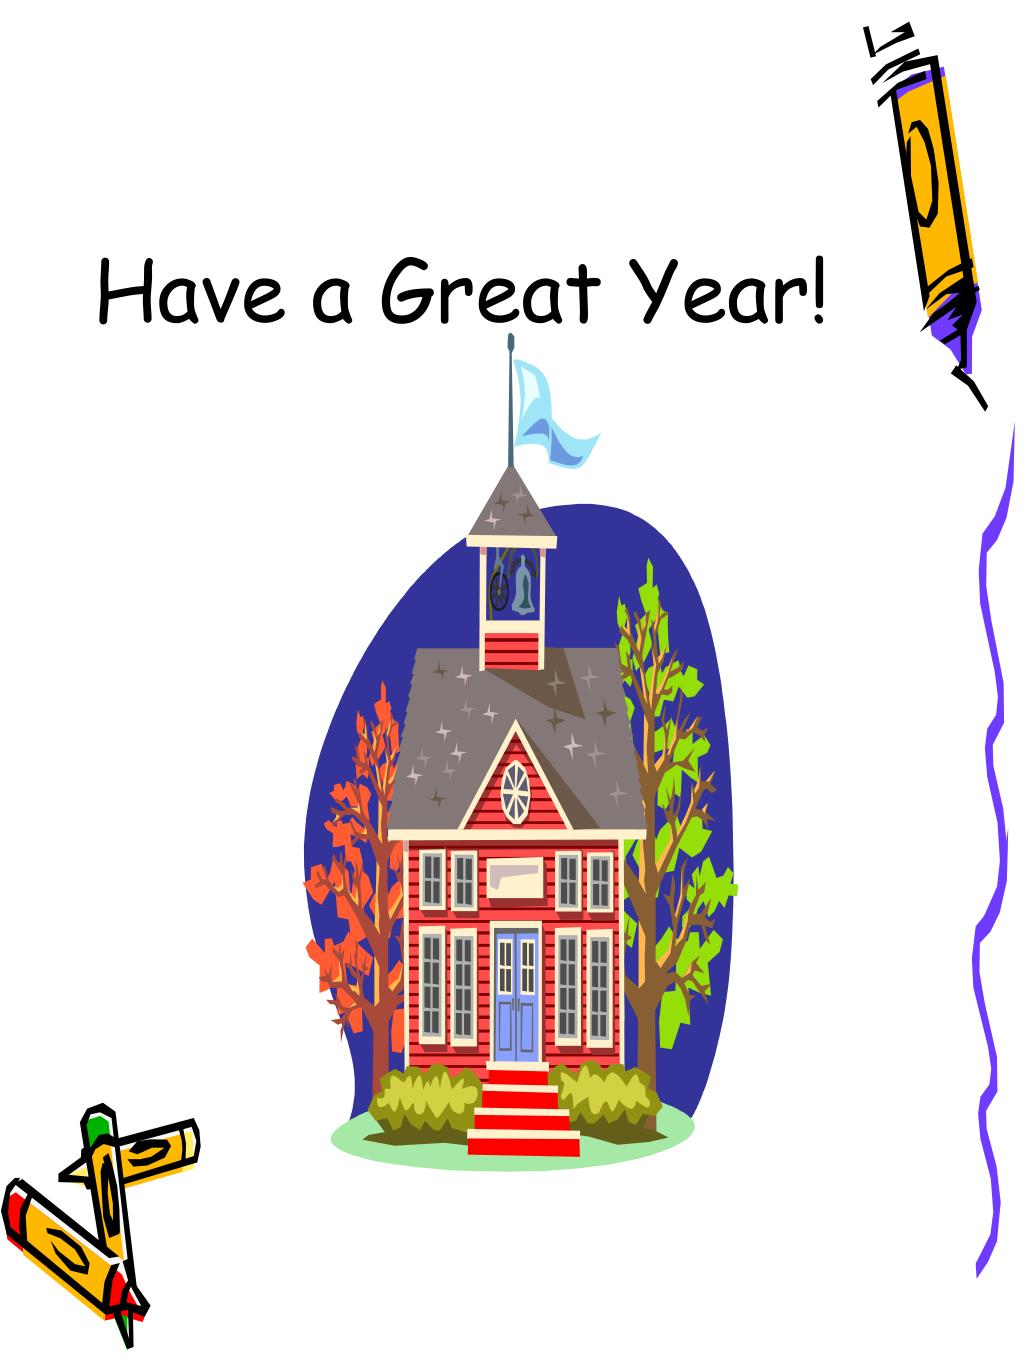 Have a Great Year!